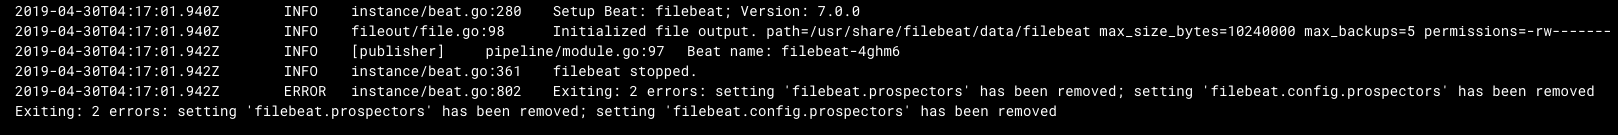 stable/filebeat] Remove the deprecated prospectors option in the